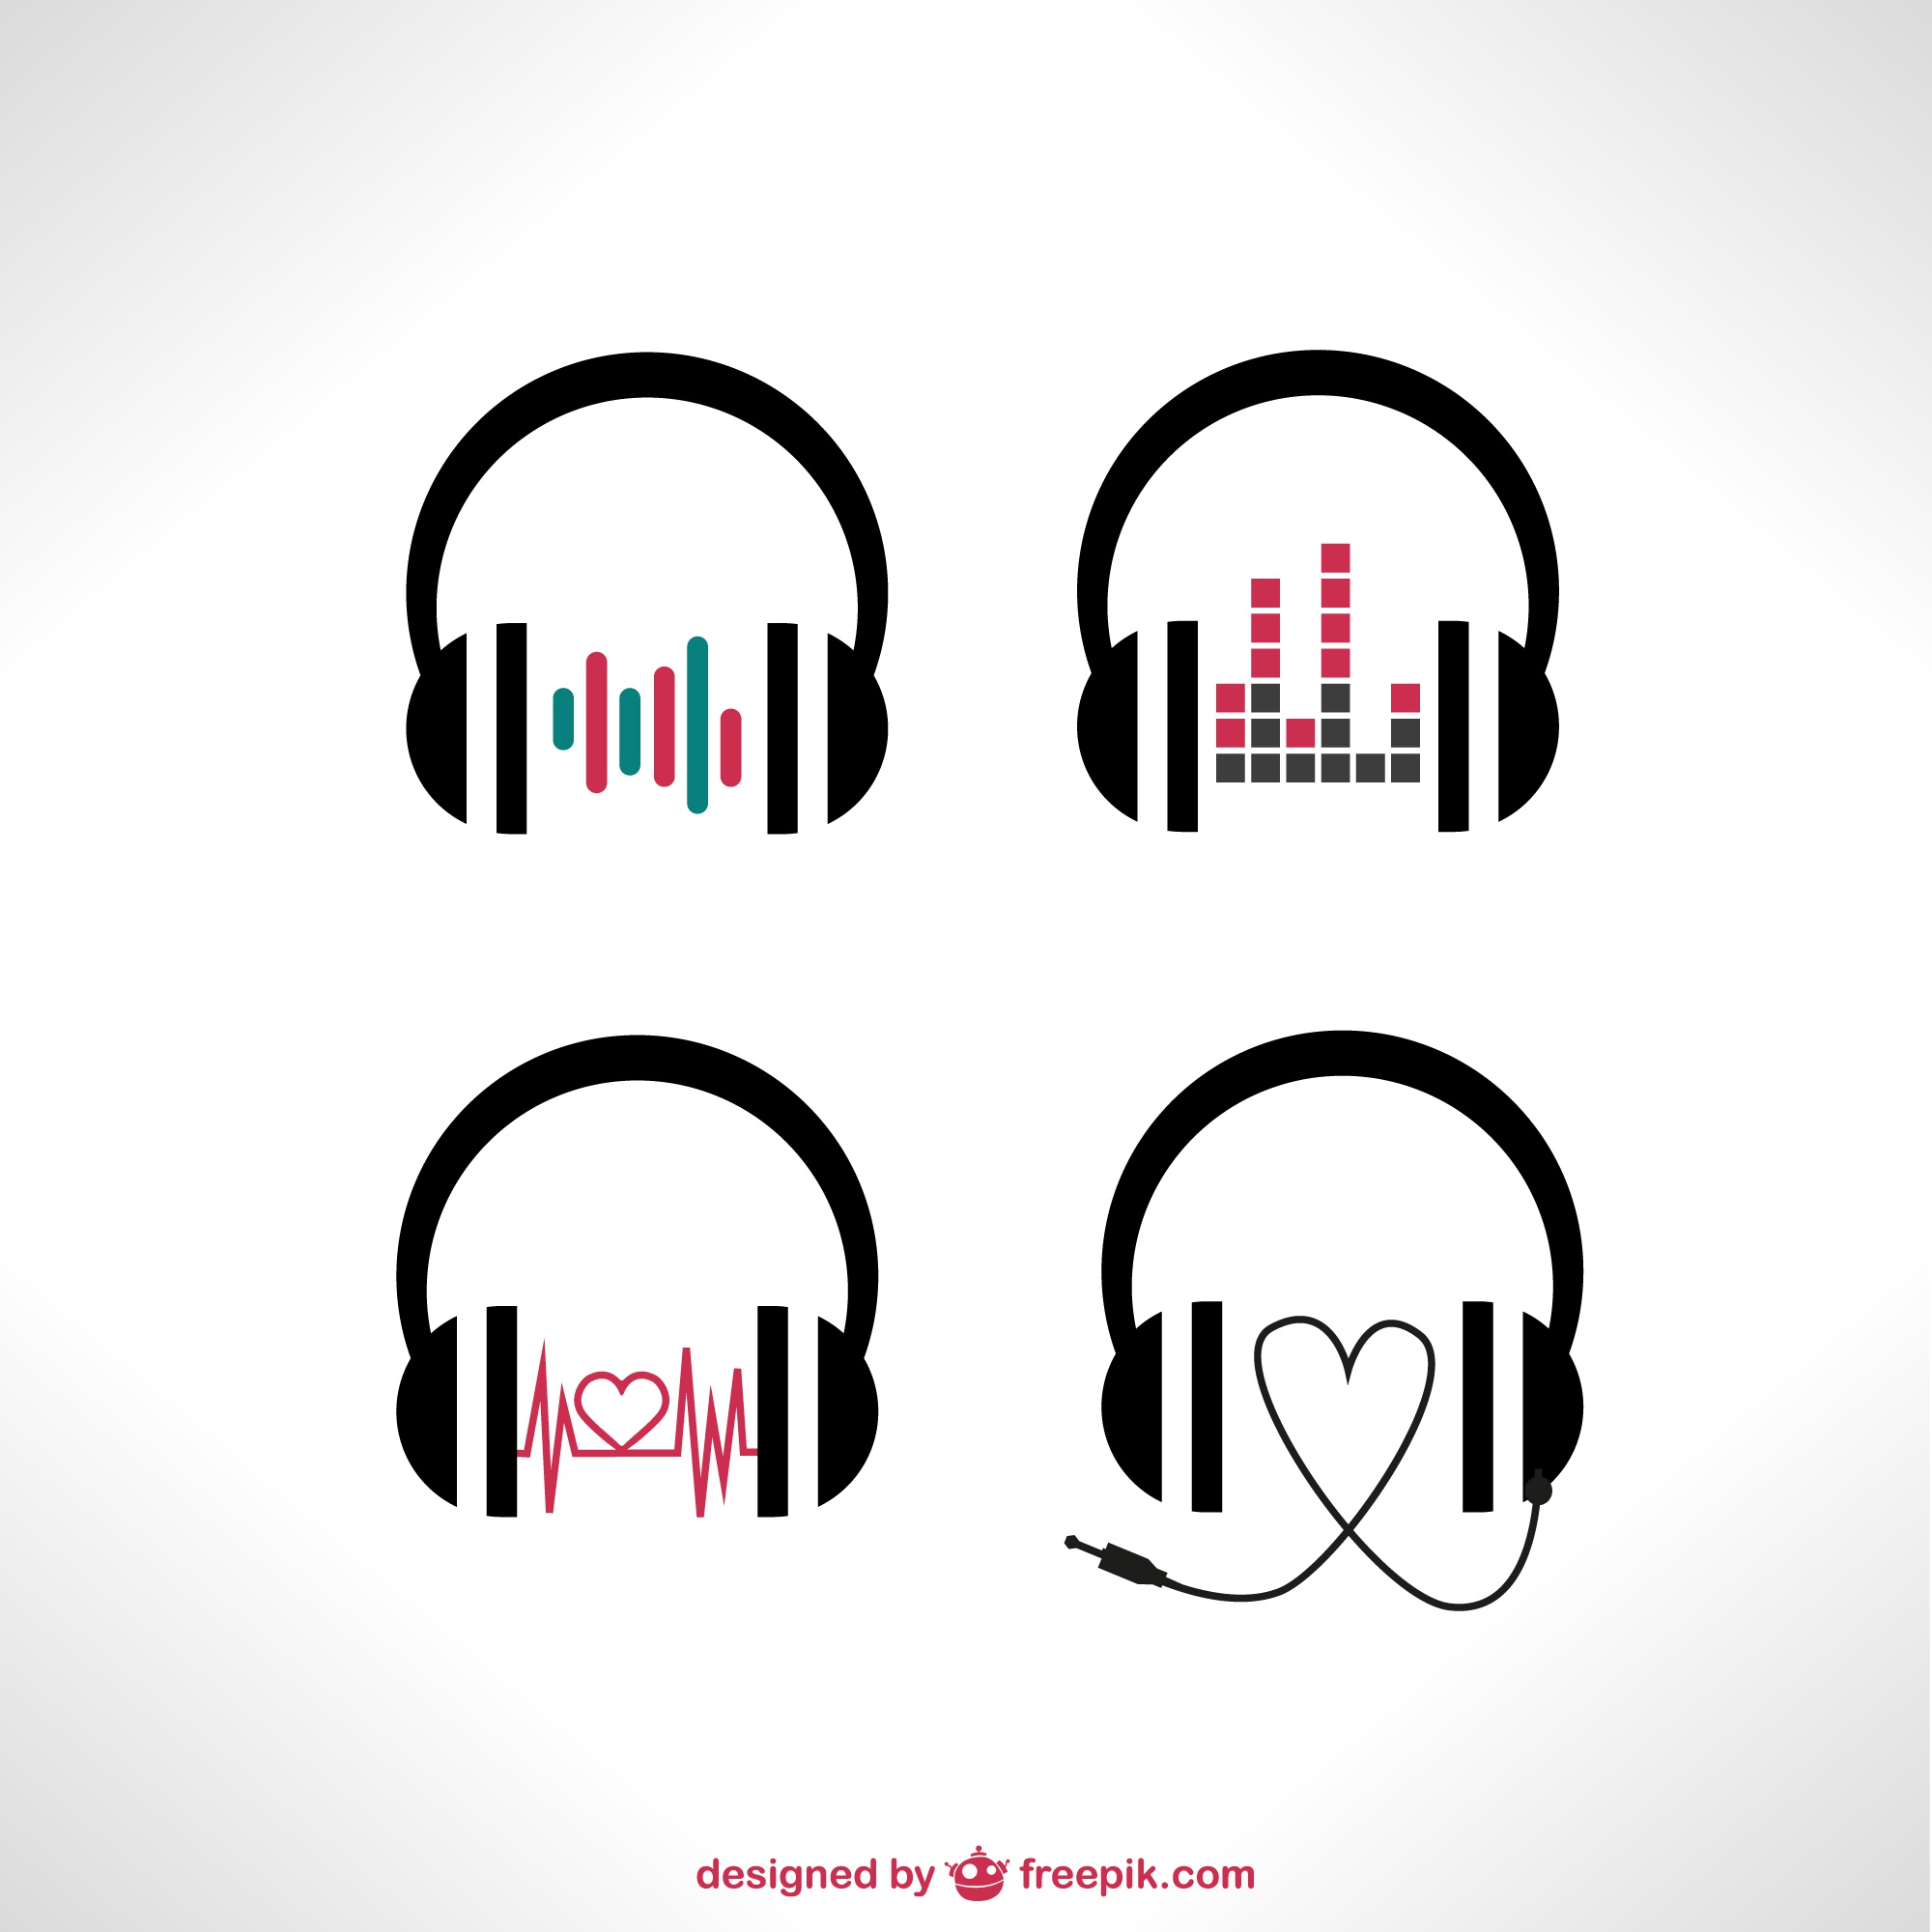 headphones vectors  photos and psd files free download headphone vector free download headphone vector free download